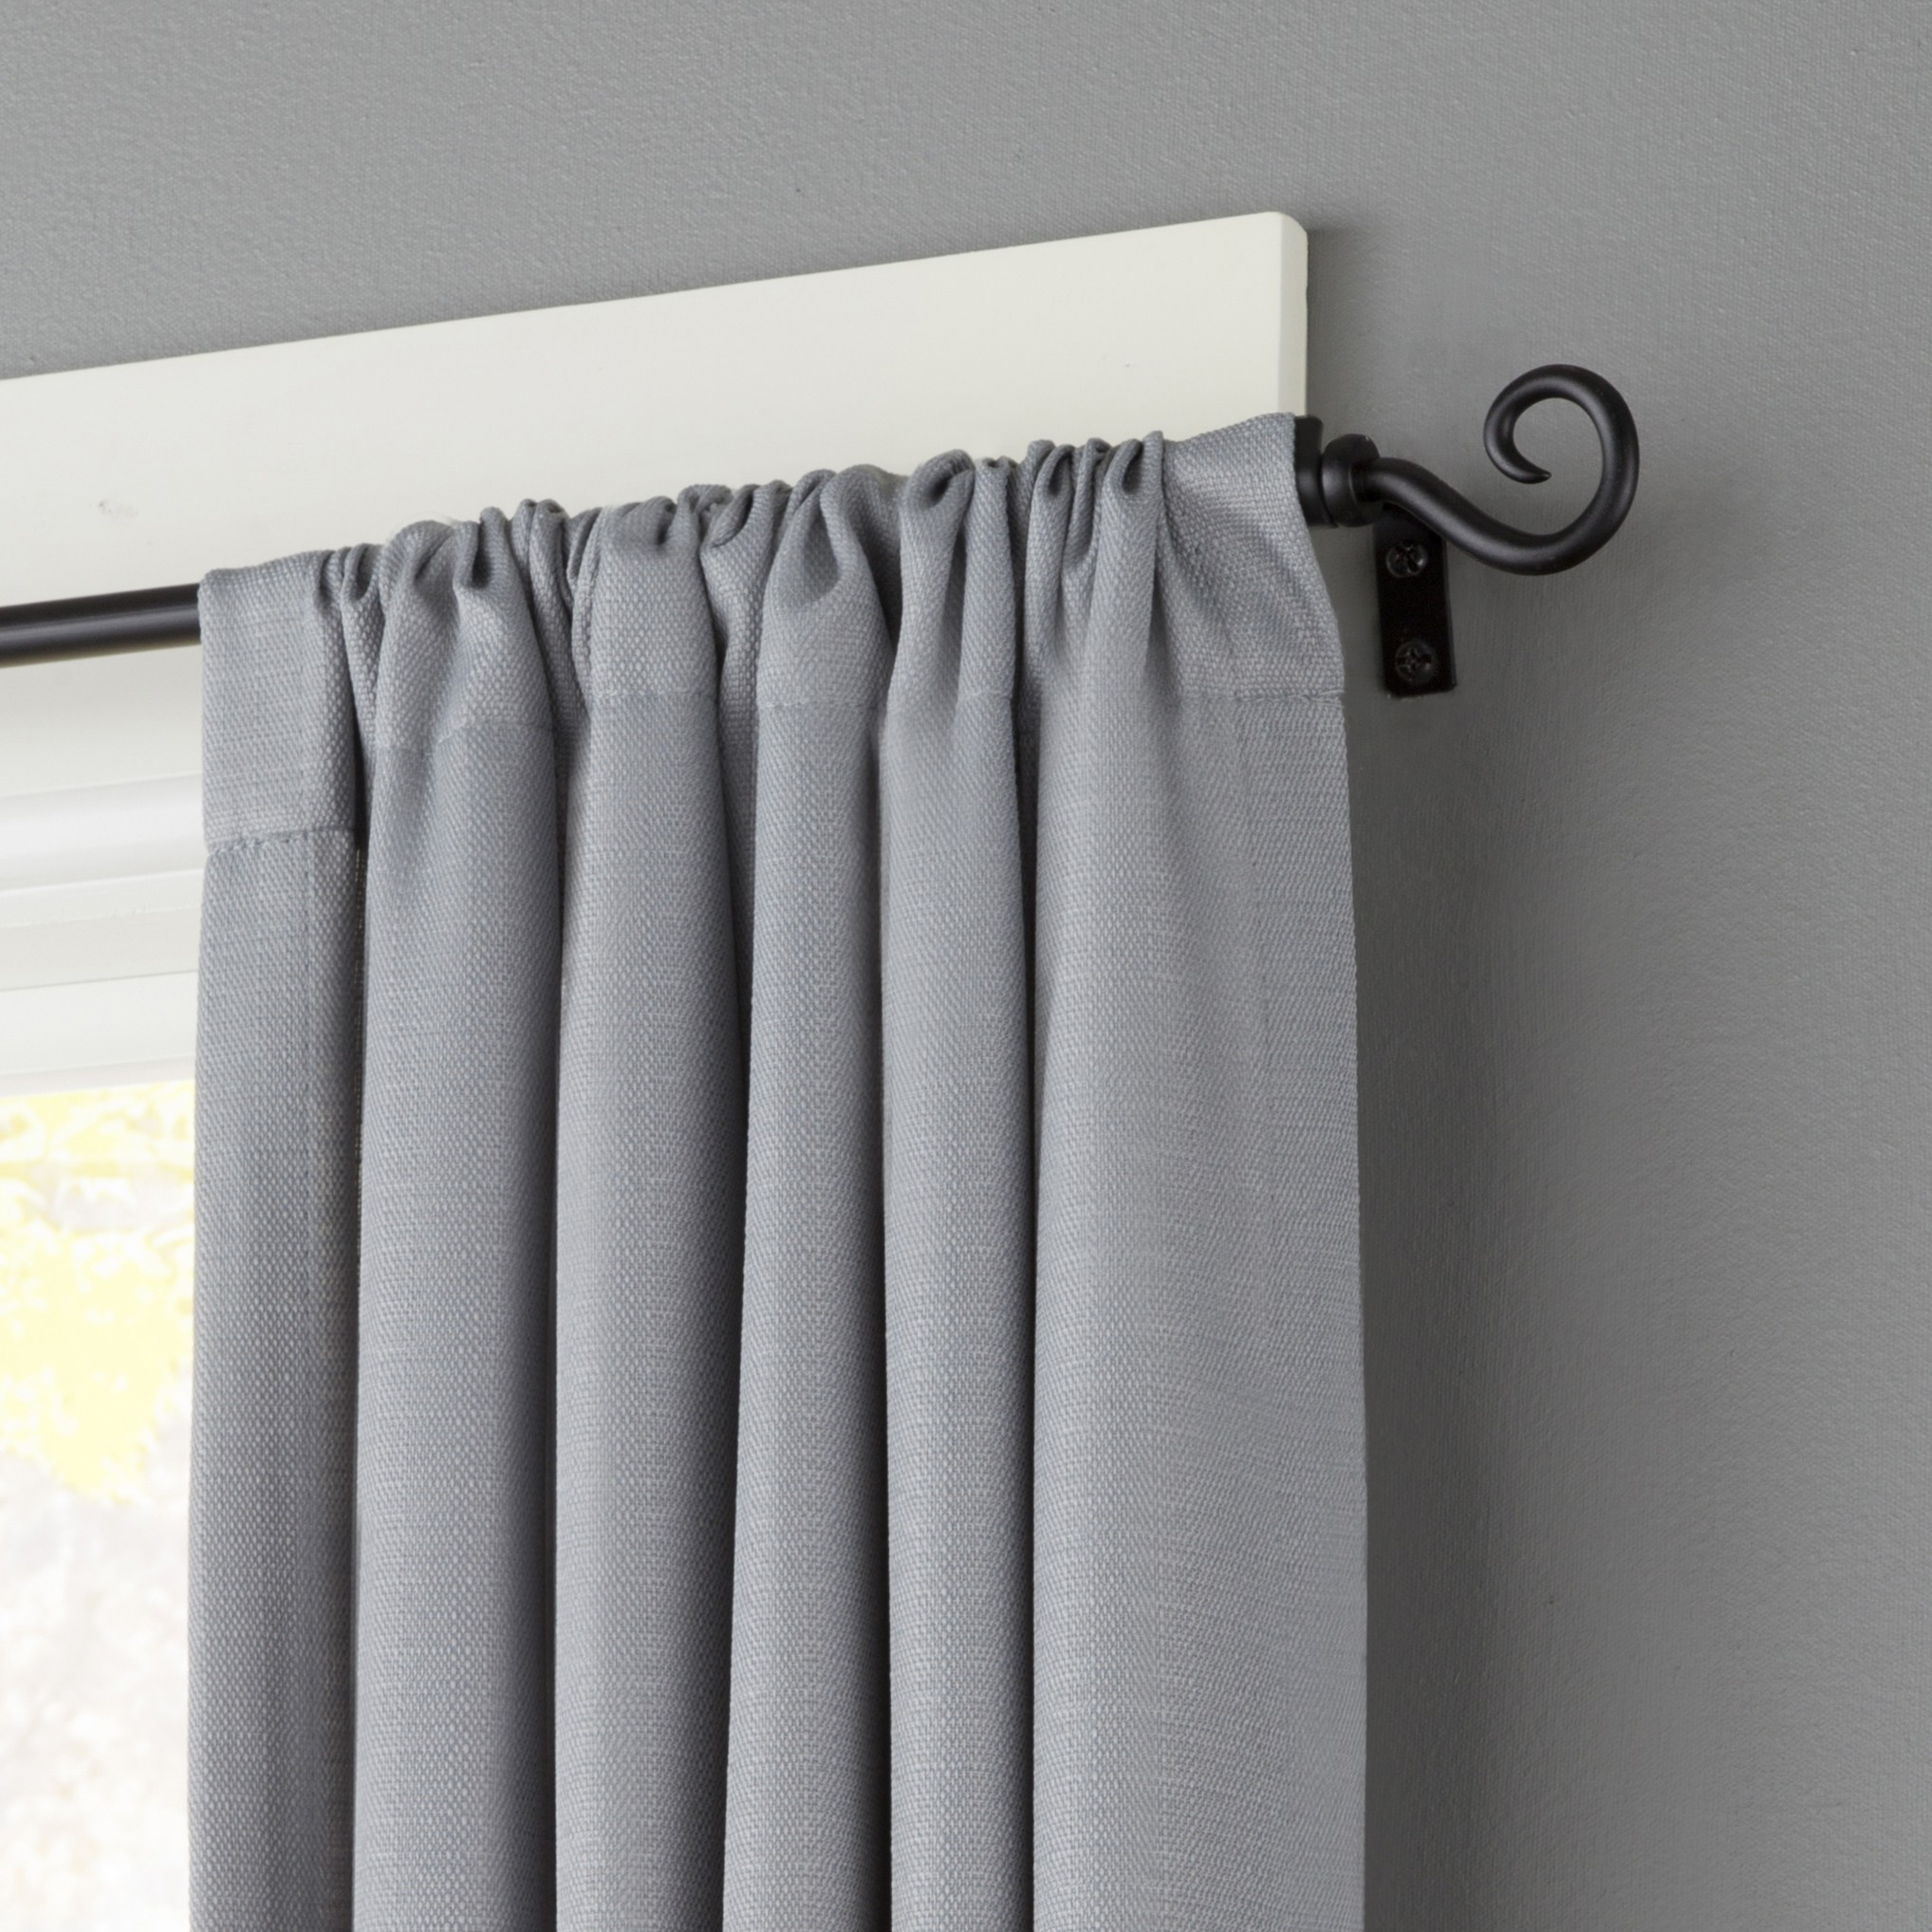 Two Curtain Rods One Window